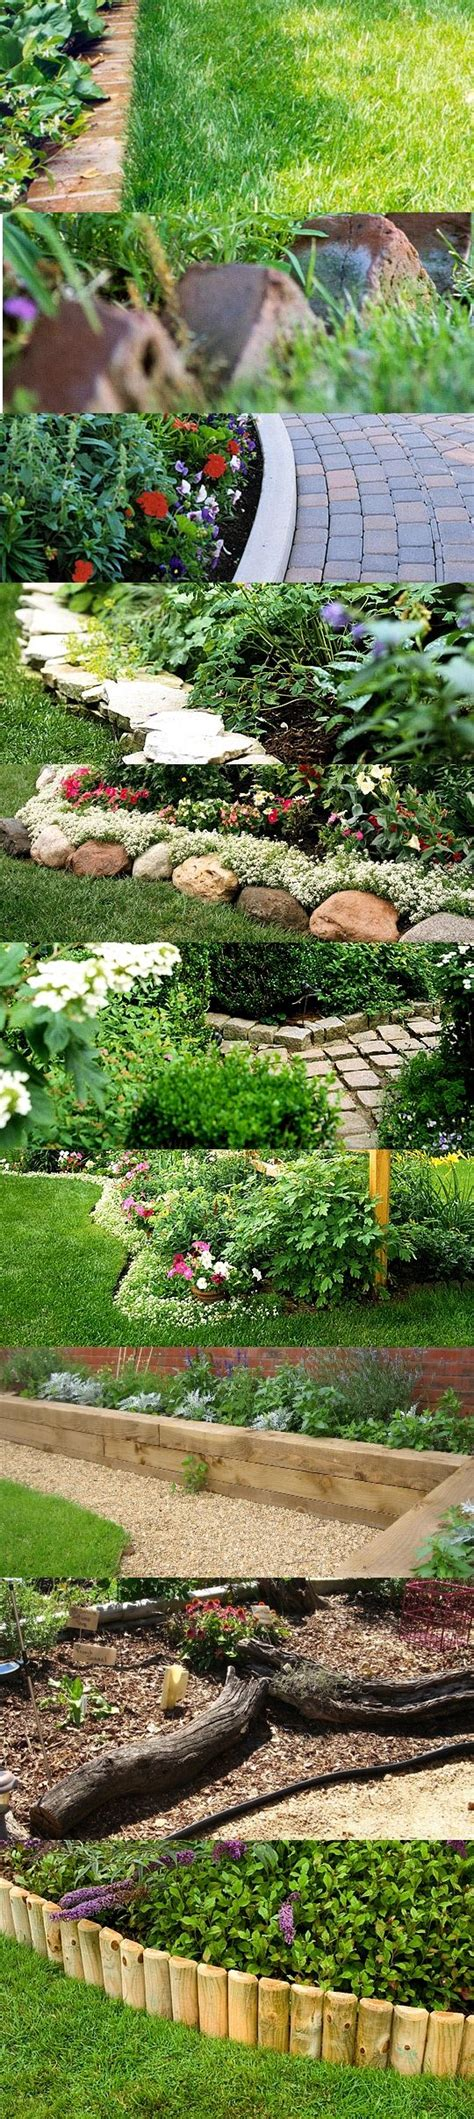 Ideas For Garden Borders And Edging Garden Bed Borders Edging Ideas For Vegetable And Flower Gardens